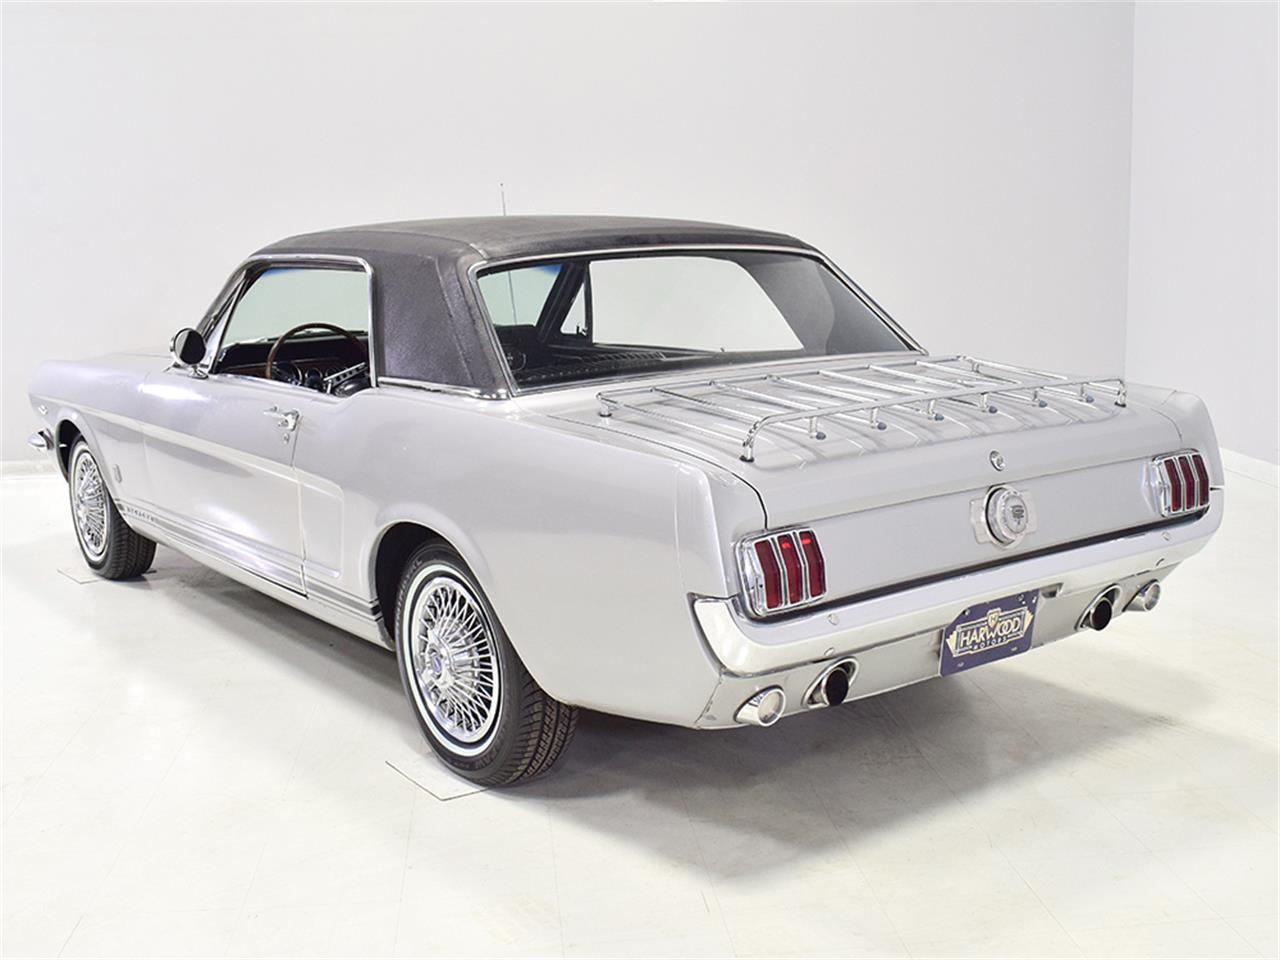 Large Picture of 1966 Mustang GT Offered by Harwood Motors, LTD. - Q0S5